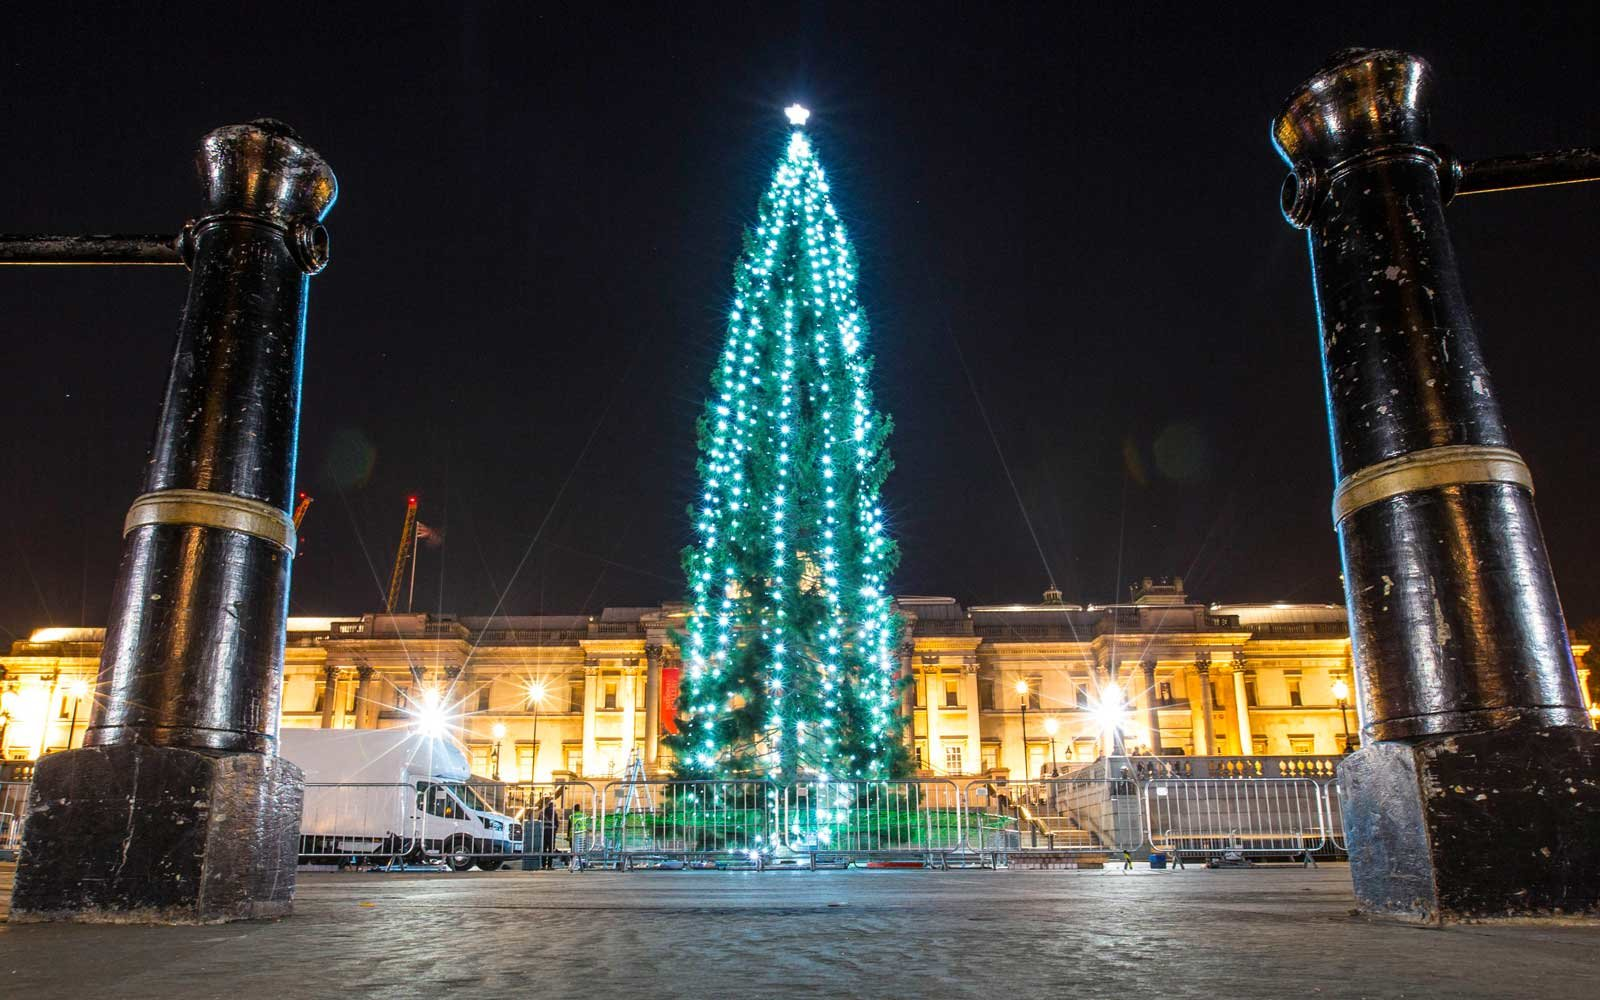 The Trafalgar Square Christmas tree comes from Norway, as a gift